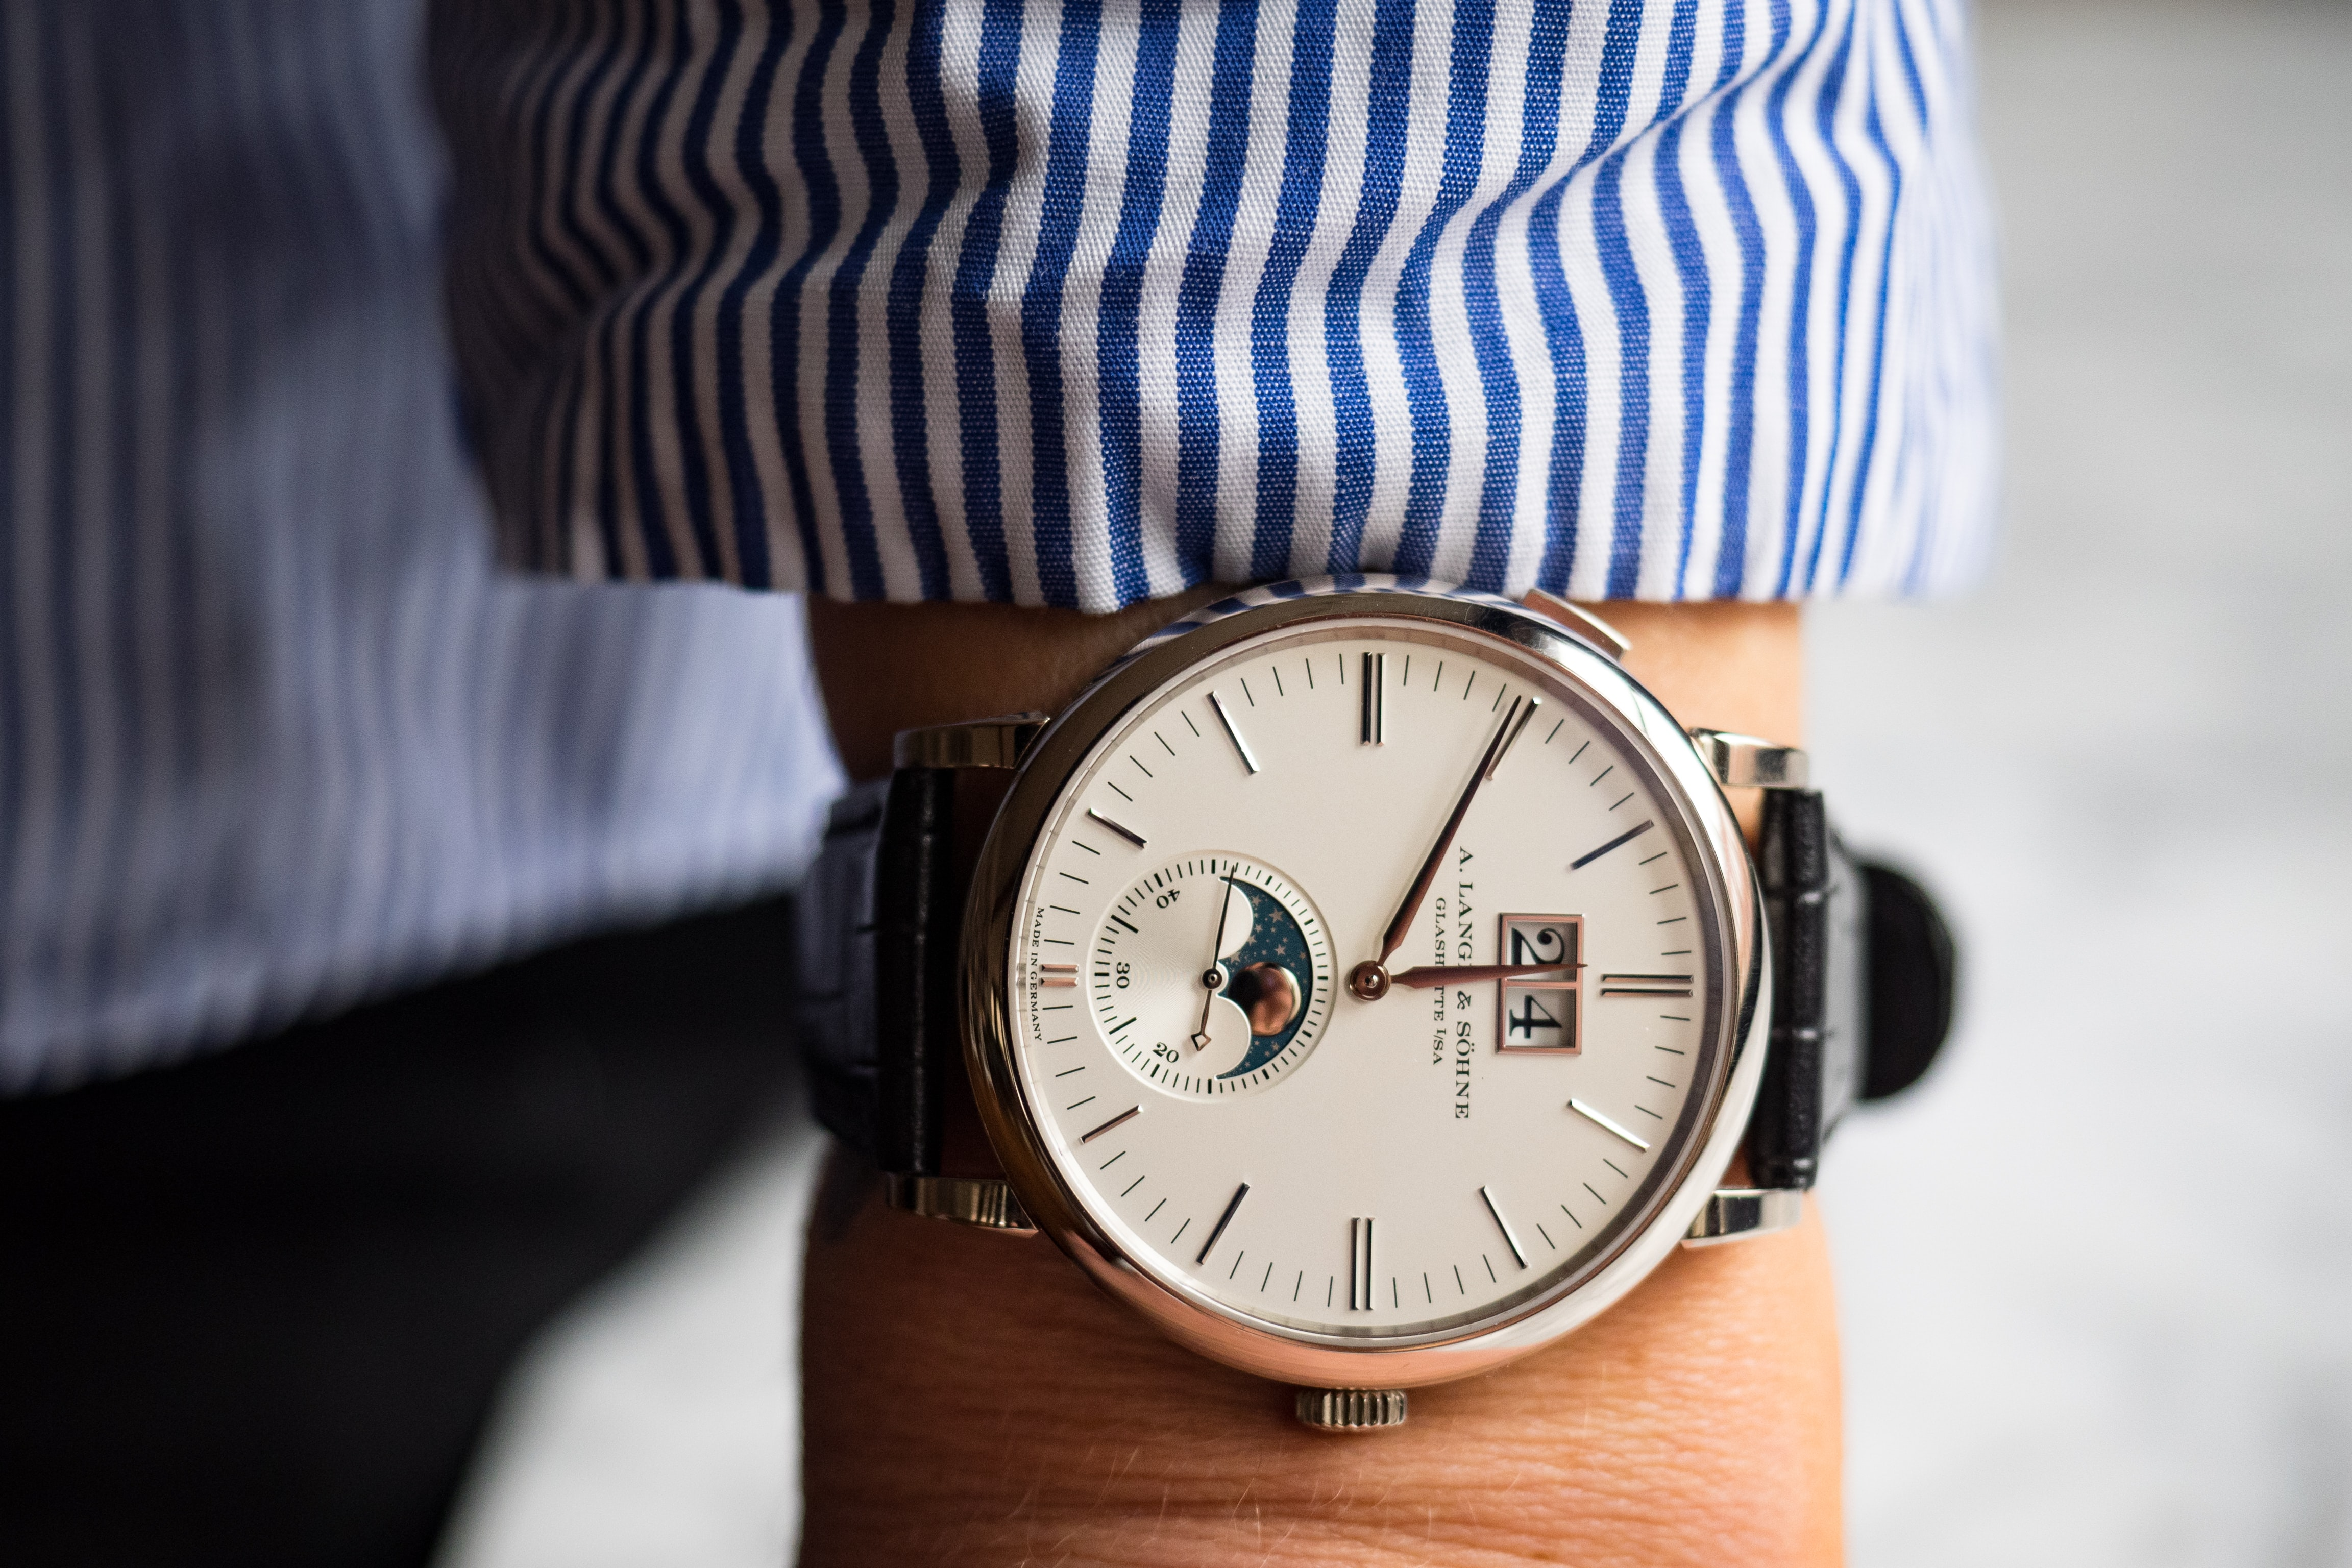 Hands-On: The A. Lange & Söhne Saxonia Moon Phase Hands-On: The A. Lange & Söhne Saxonia Moon Phase we